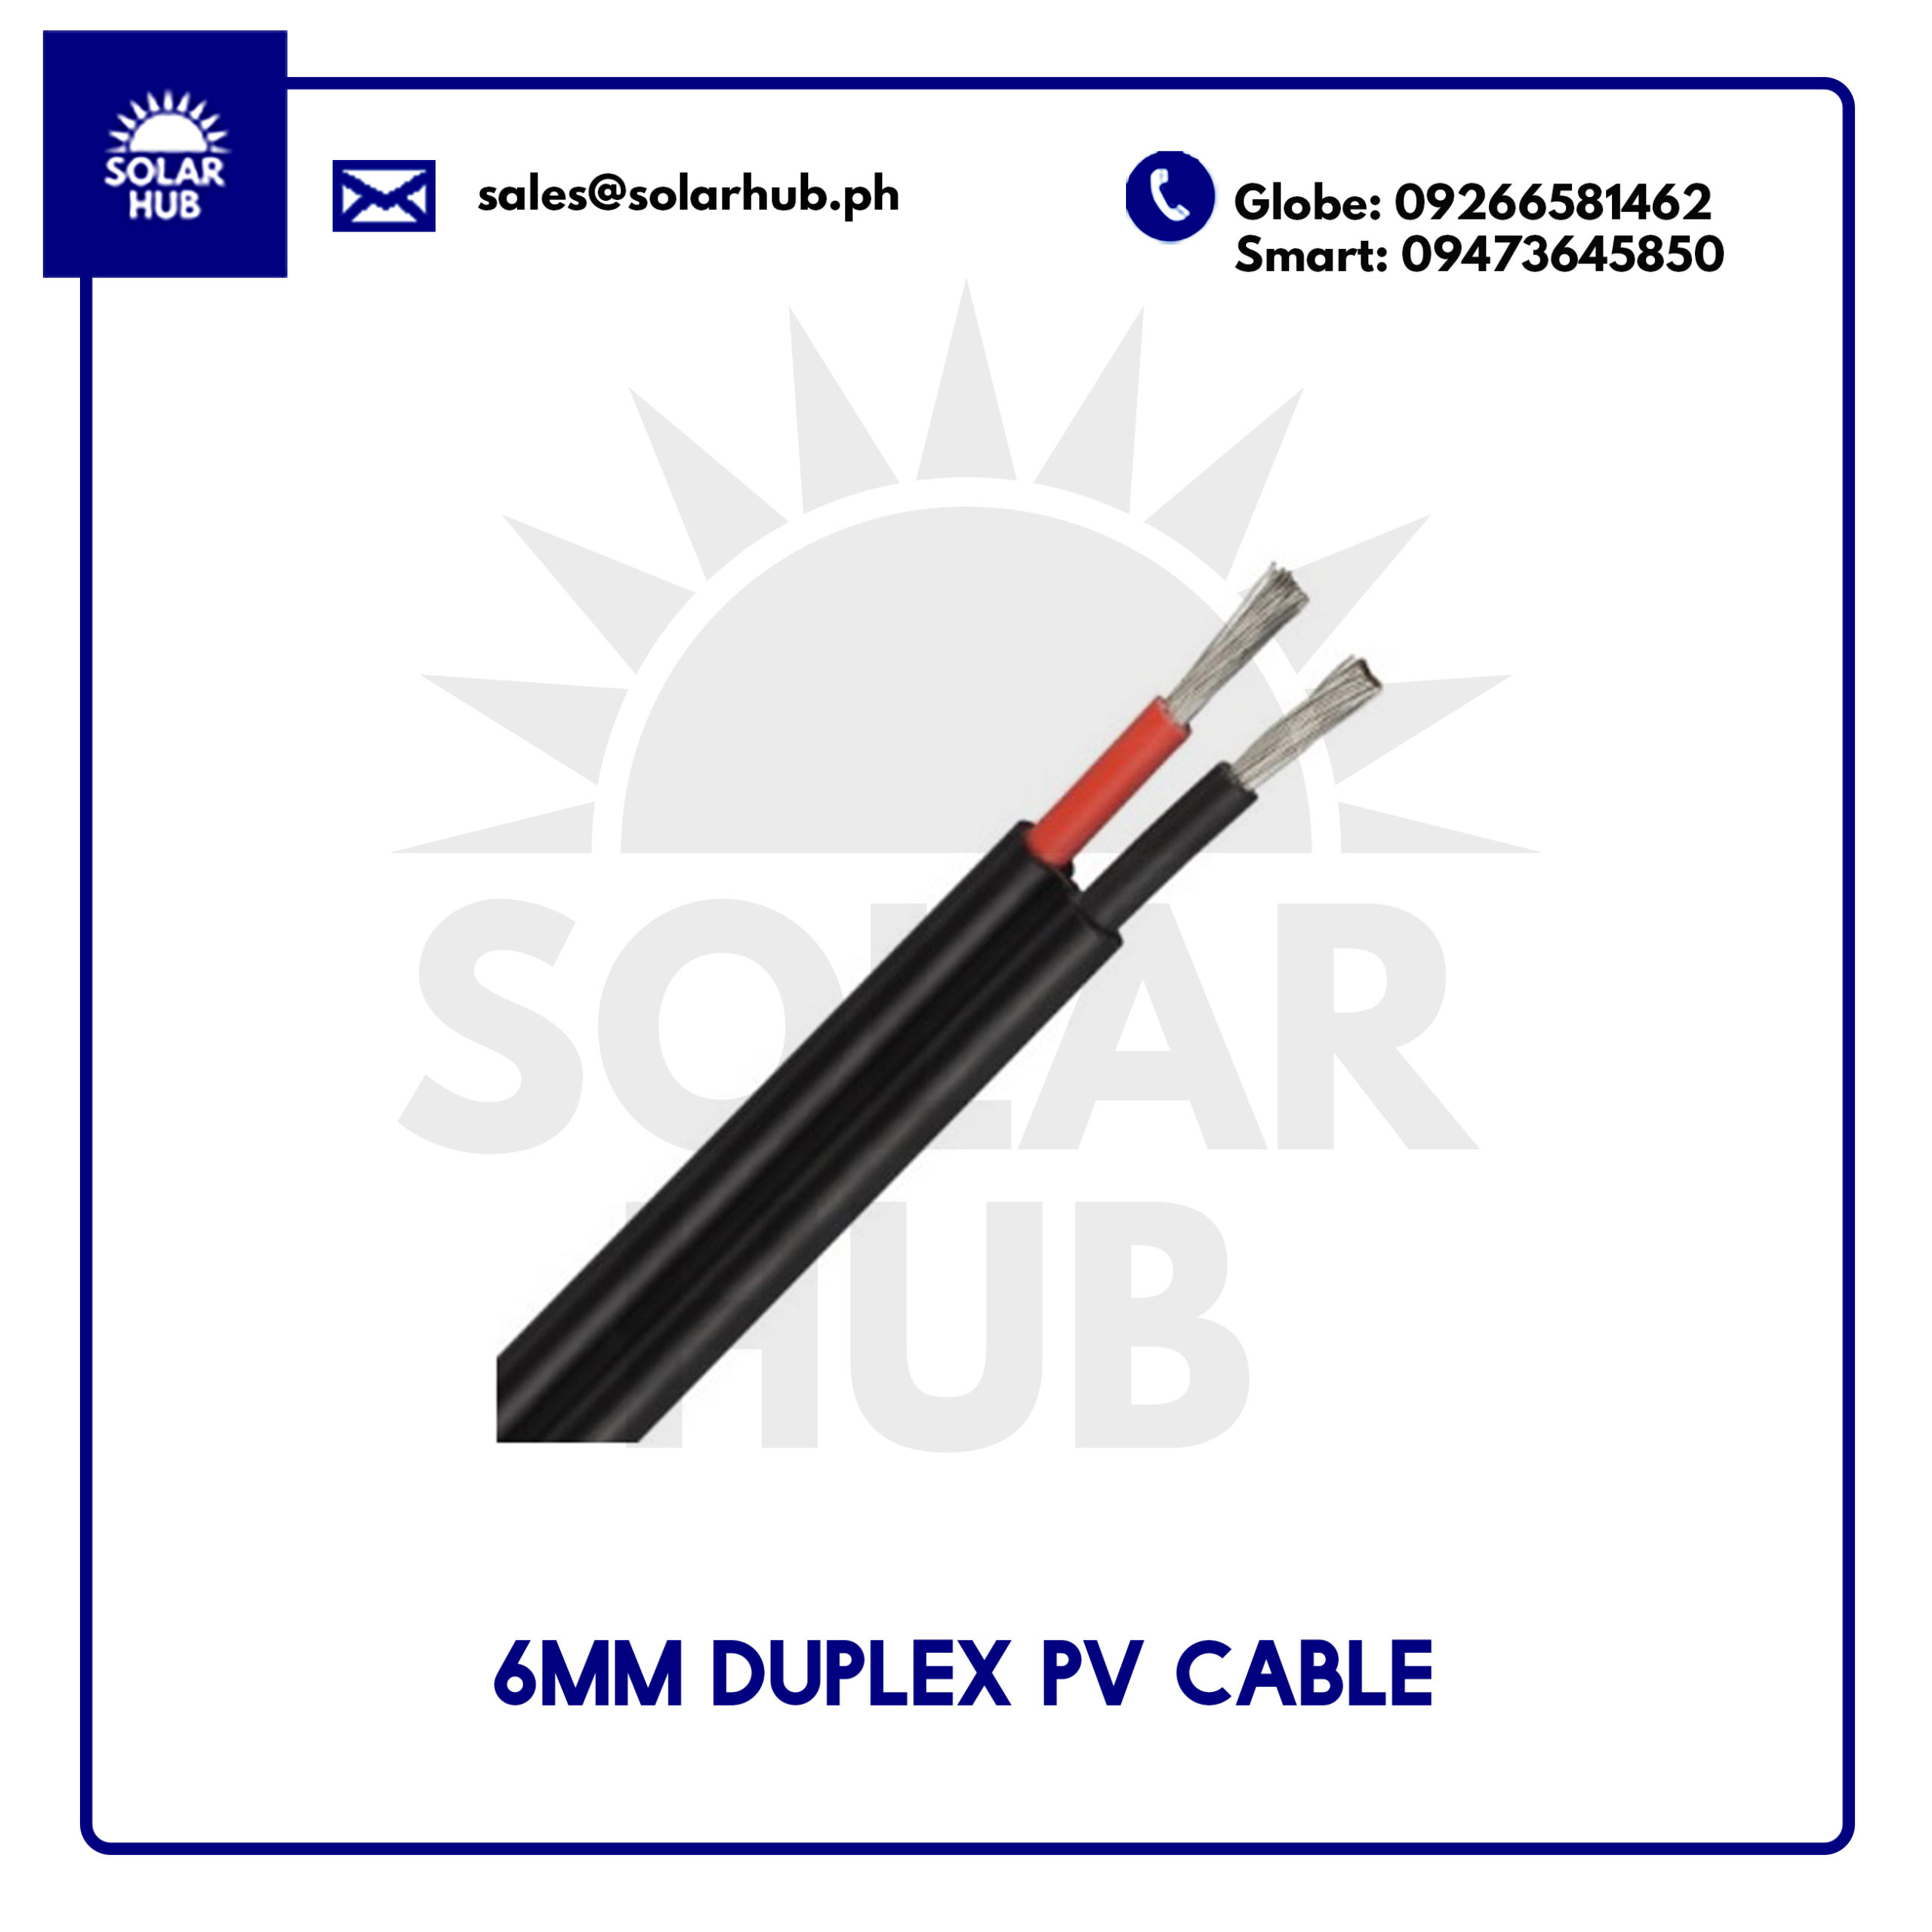 6mm duplex pv cable